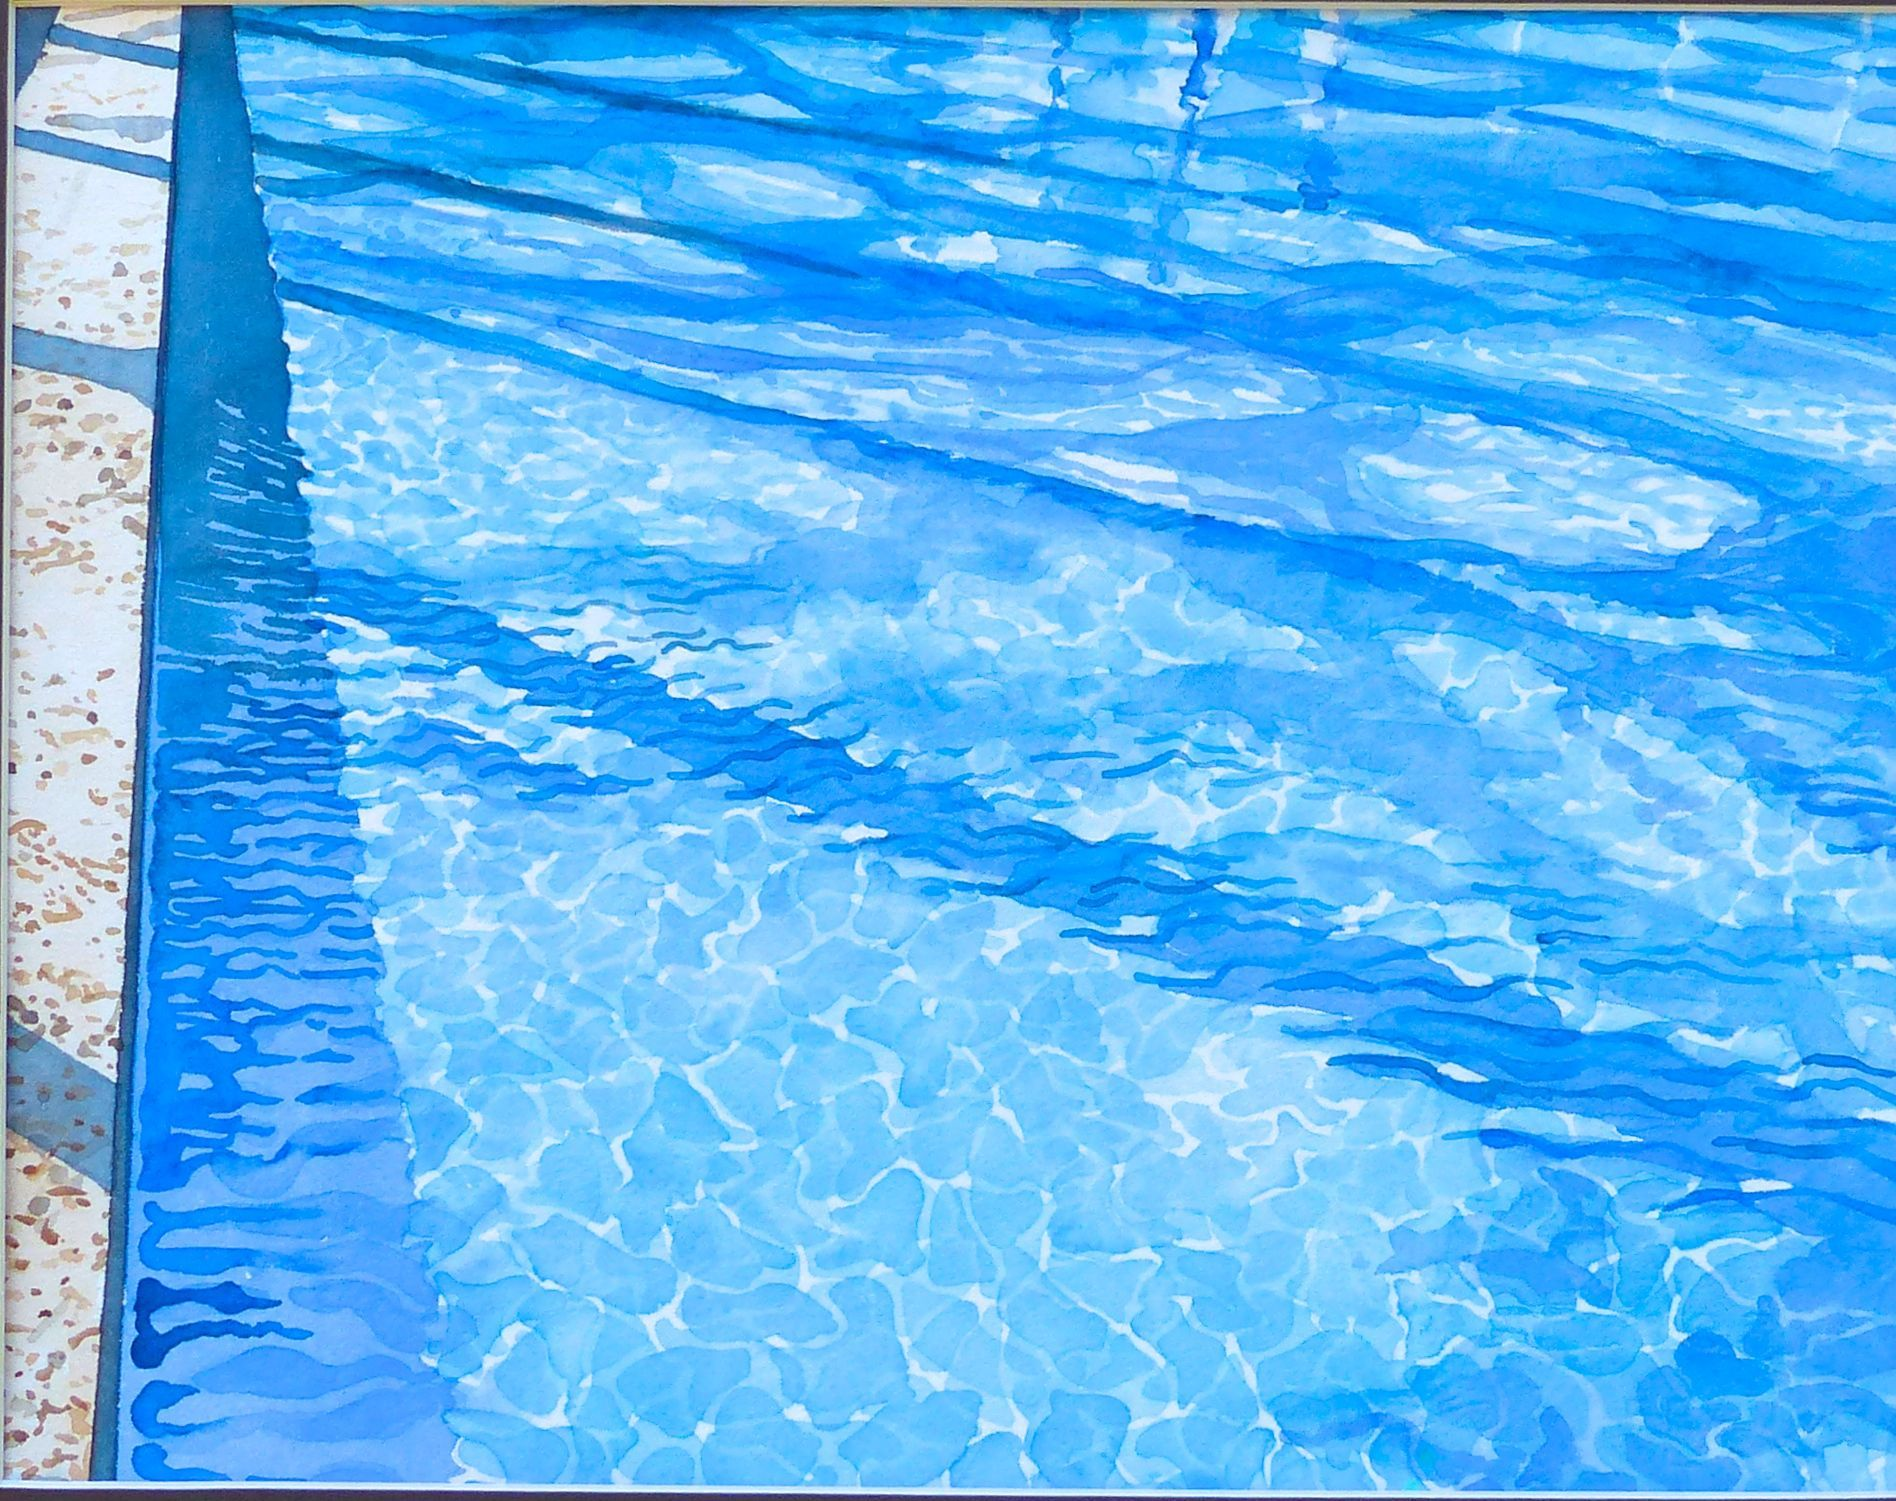 Tree Shadows On Pool Painting Landscape Swimming Pool Water